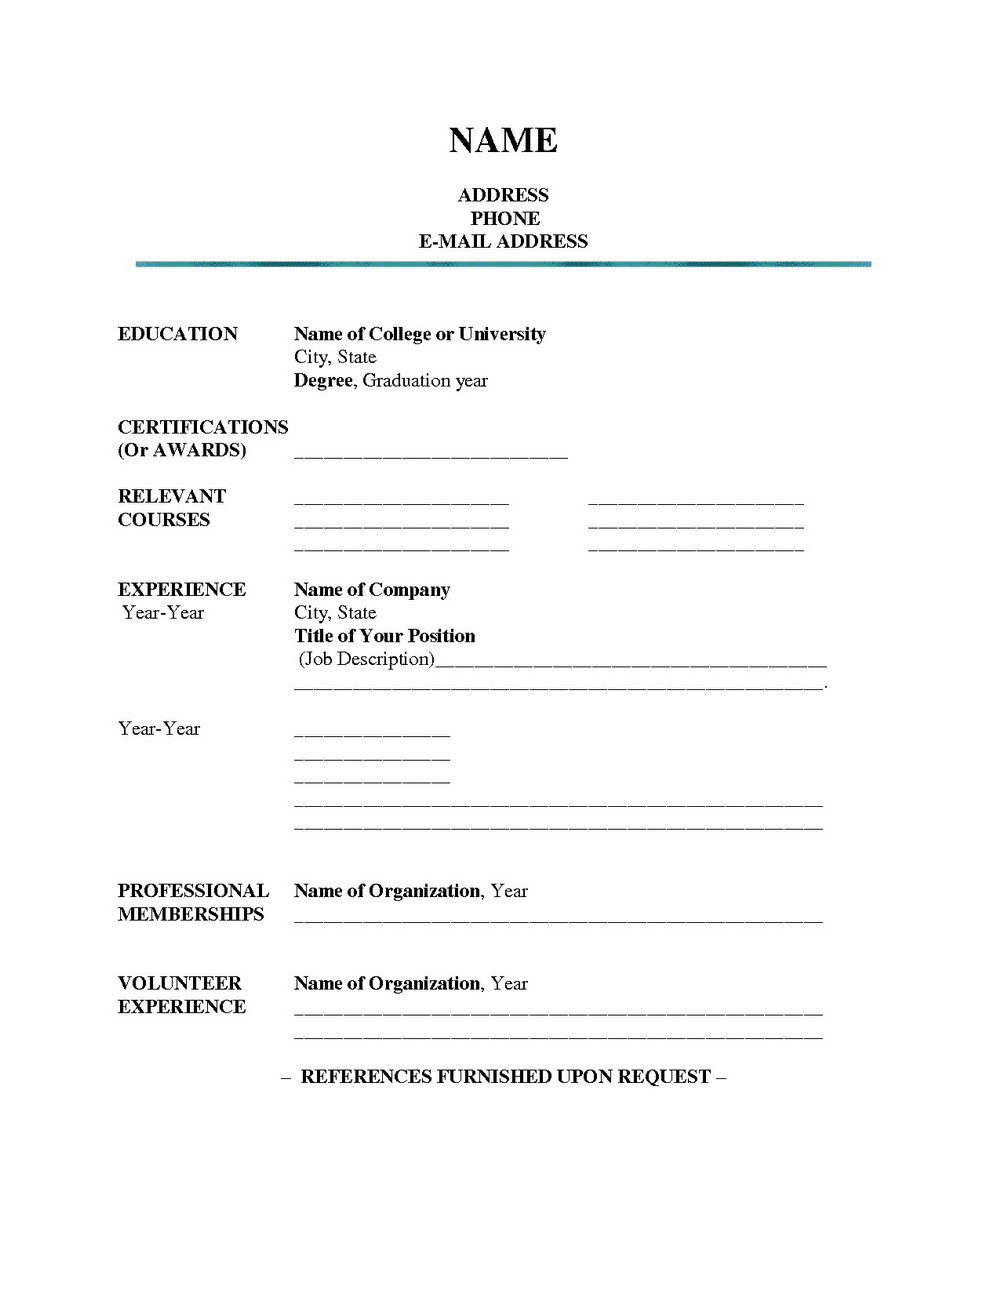 Fill In The Blank Resume Outline